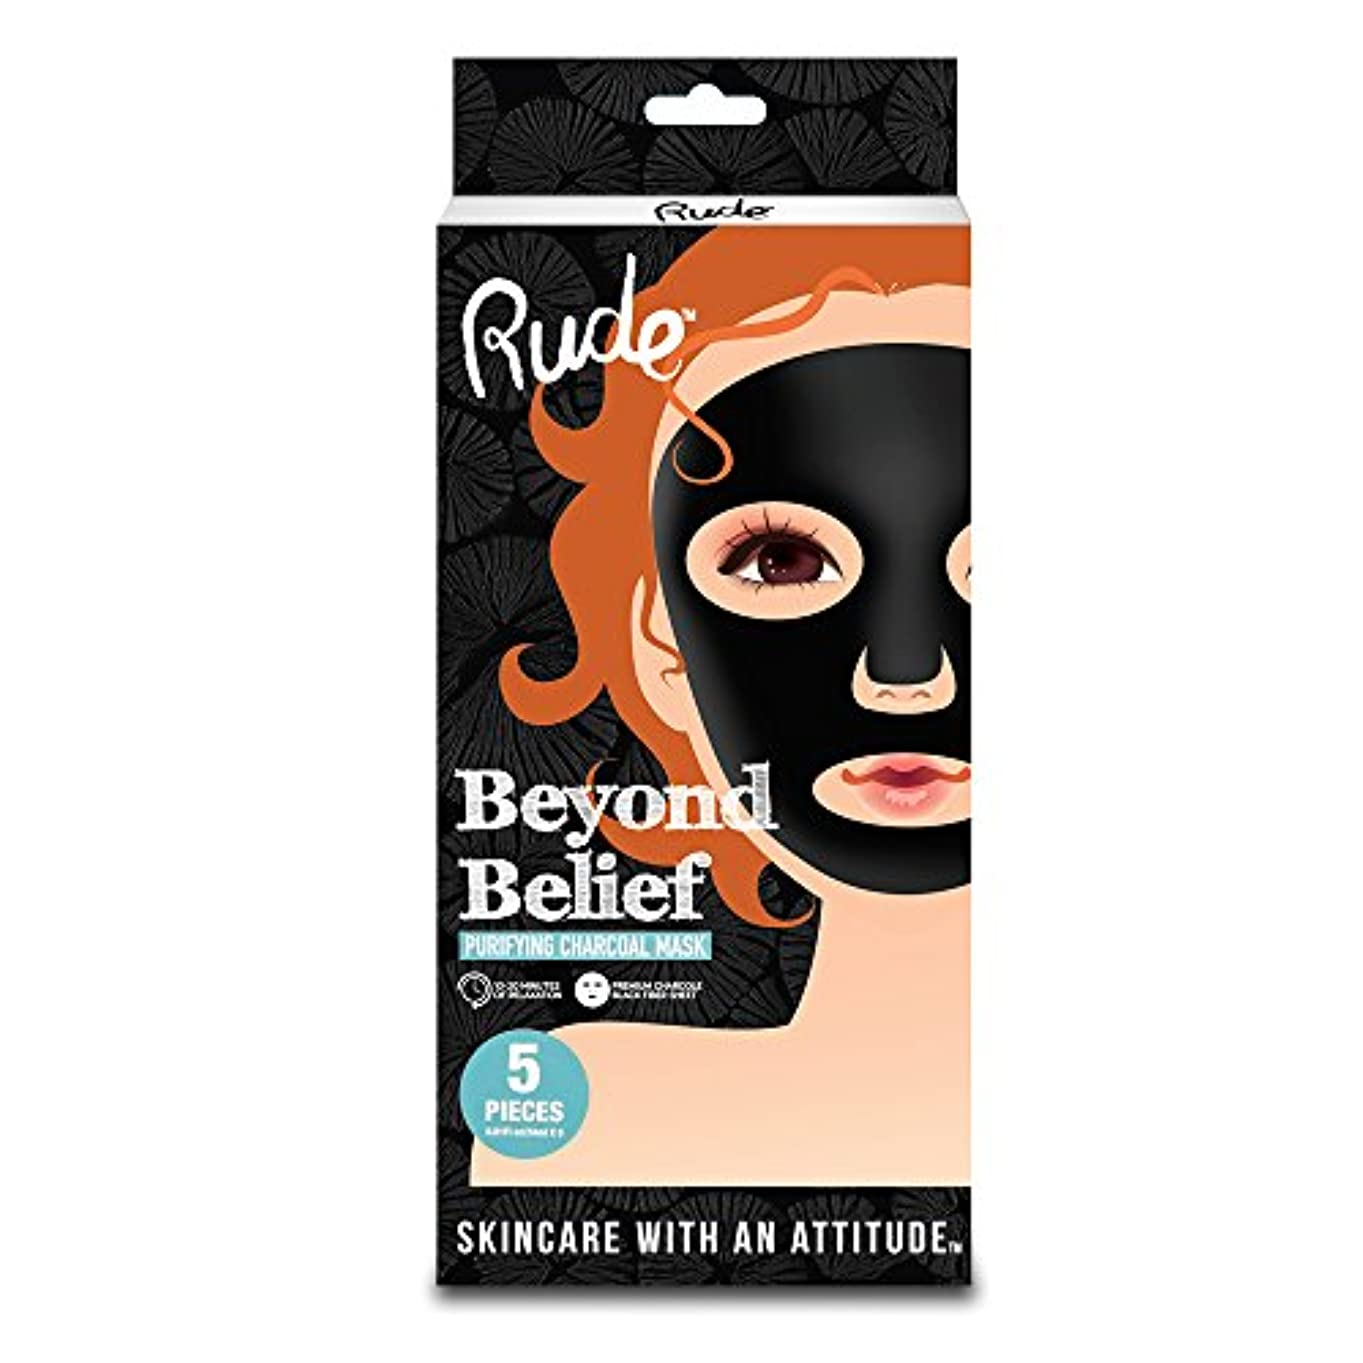 胆嚢因子マウンドRUDE Beyond Belief Purifying Charcoal Mask 5 Piece Pack (並行輸入品)